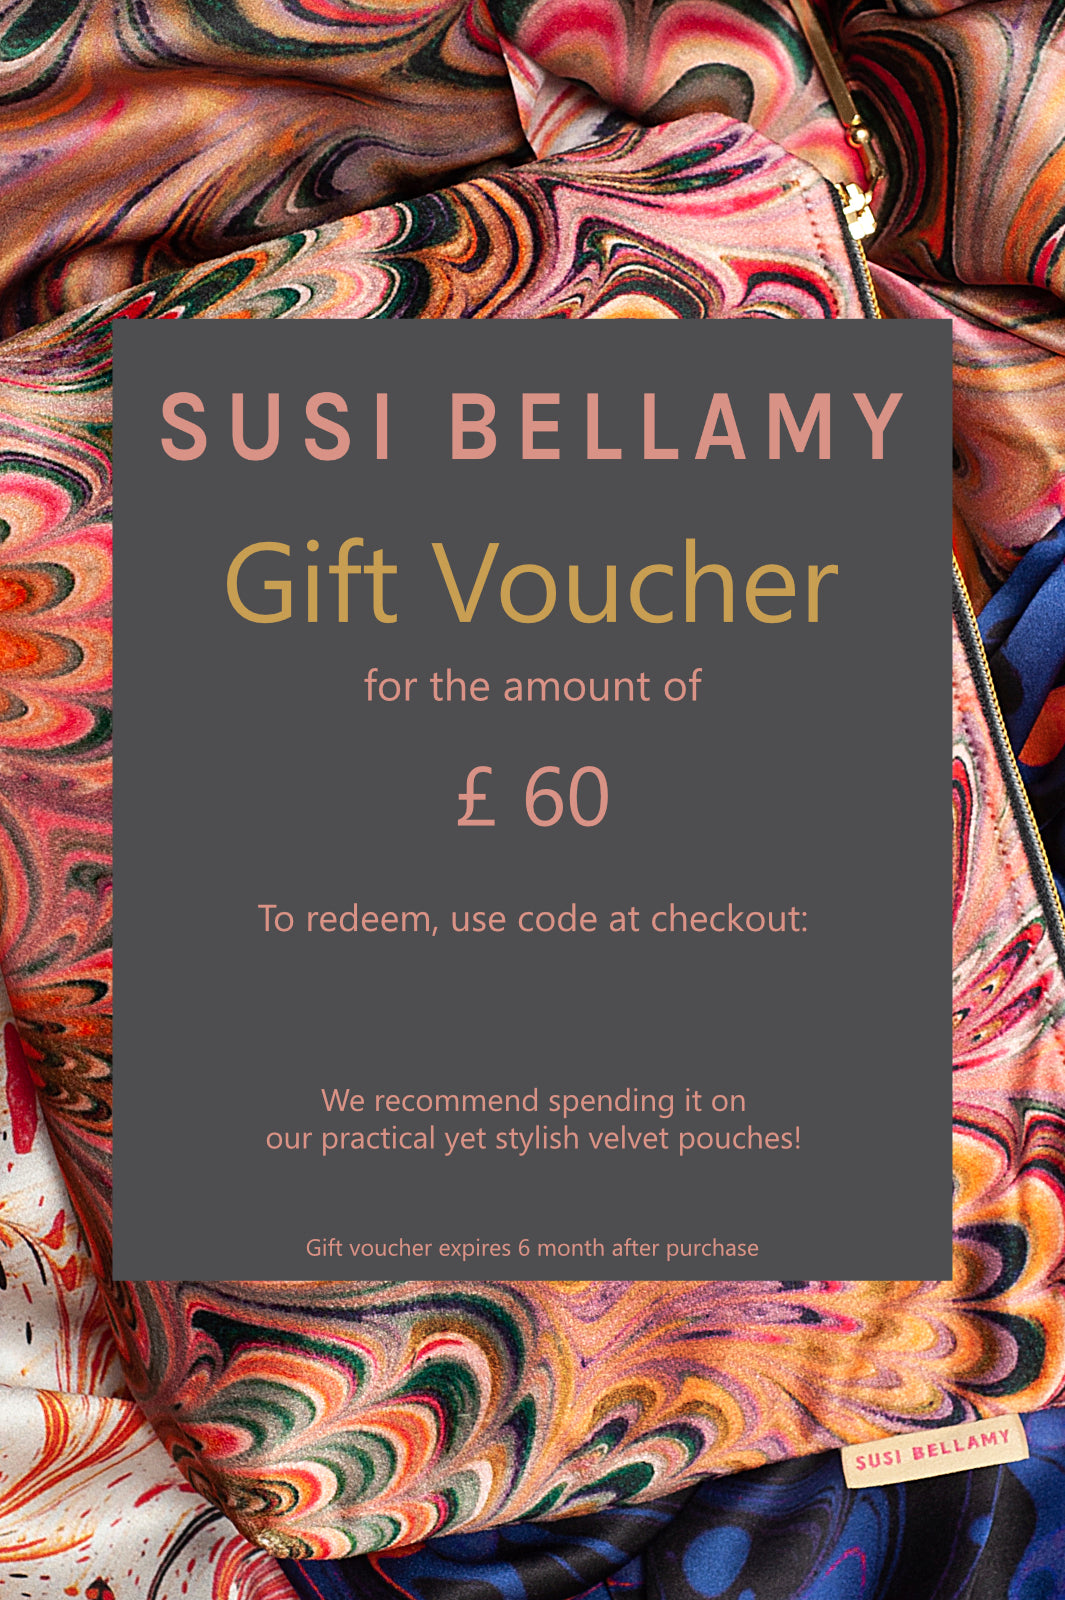 Susi Bellamy Gift Voucher for £60